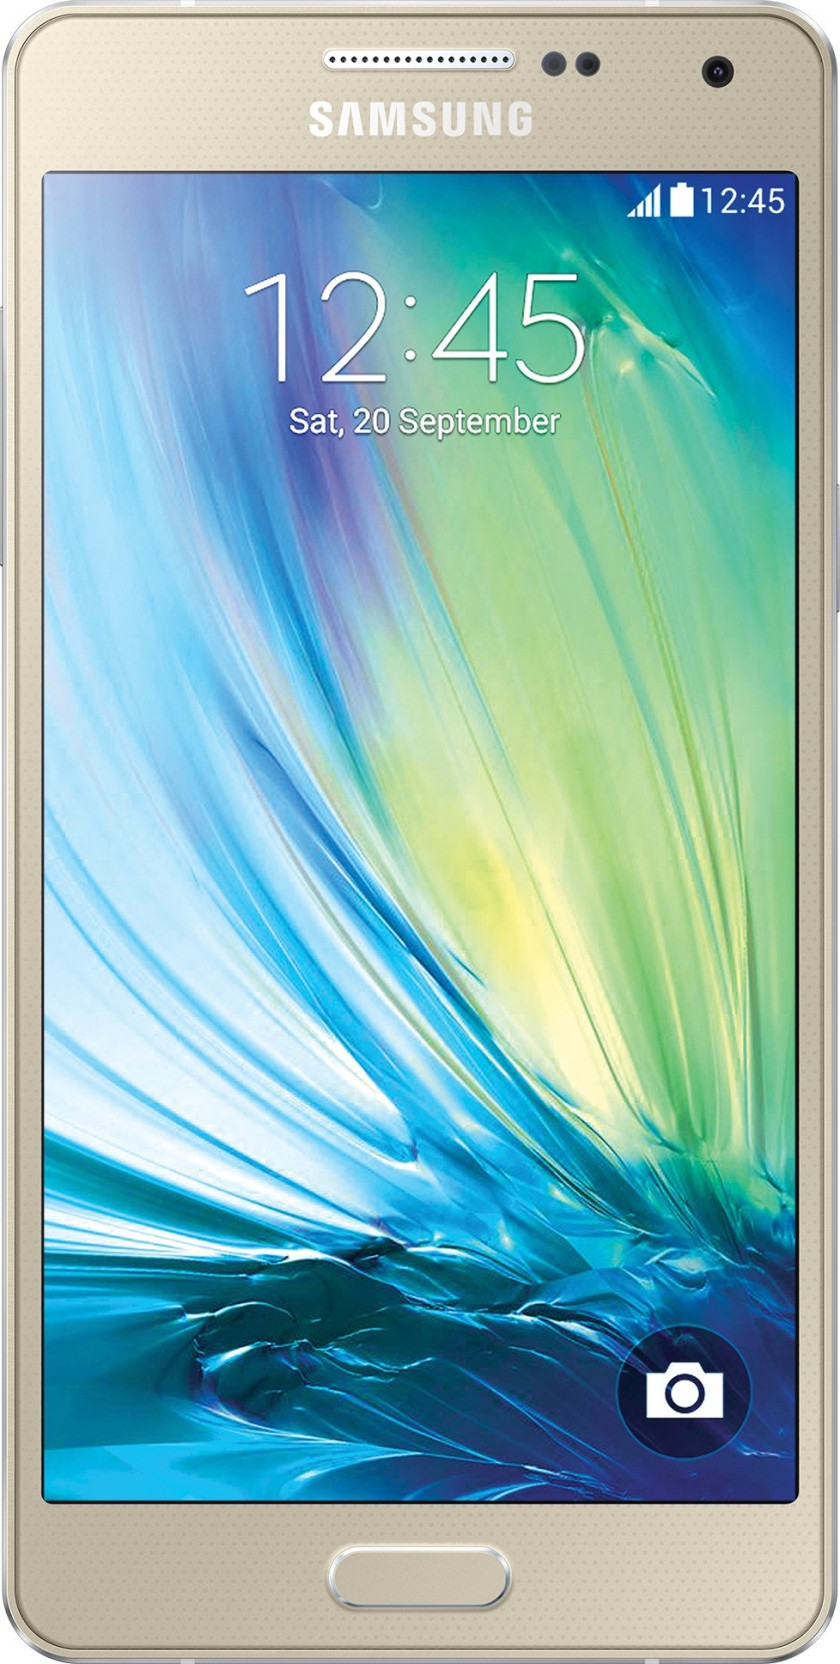 Samsung Galaxy A5 Champagne Gold 16 Gb Online At Best Price Only S5 Super Amoled Touchsreen 16m Colors Quad Core 25 Ghz Processor 2g Ram Home